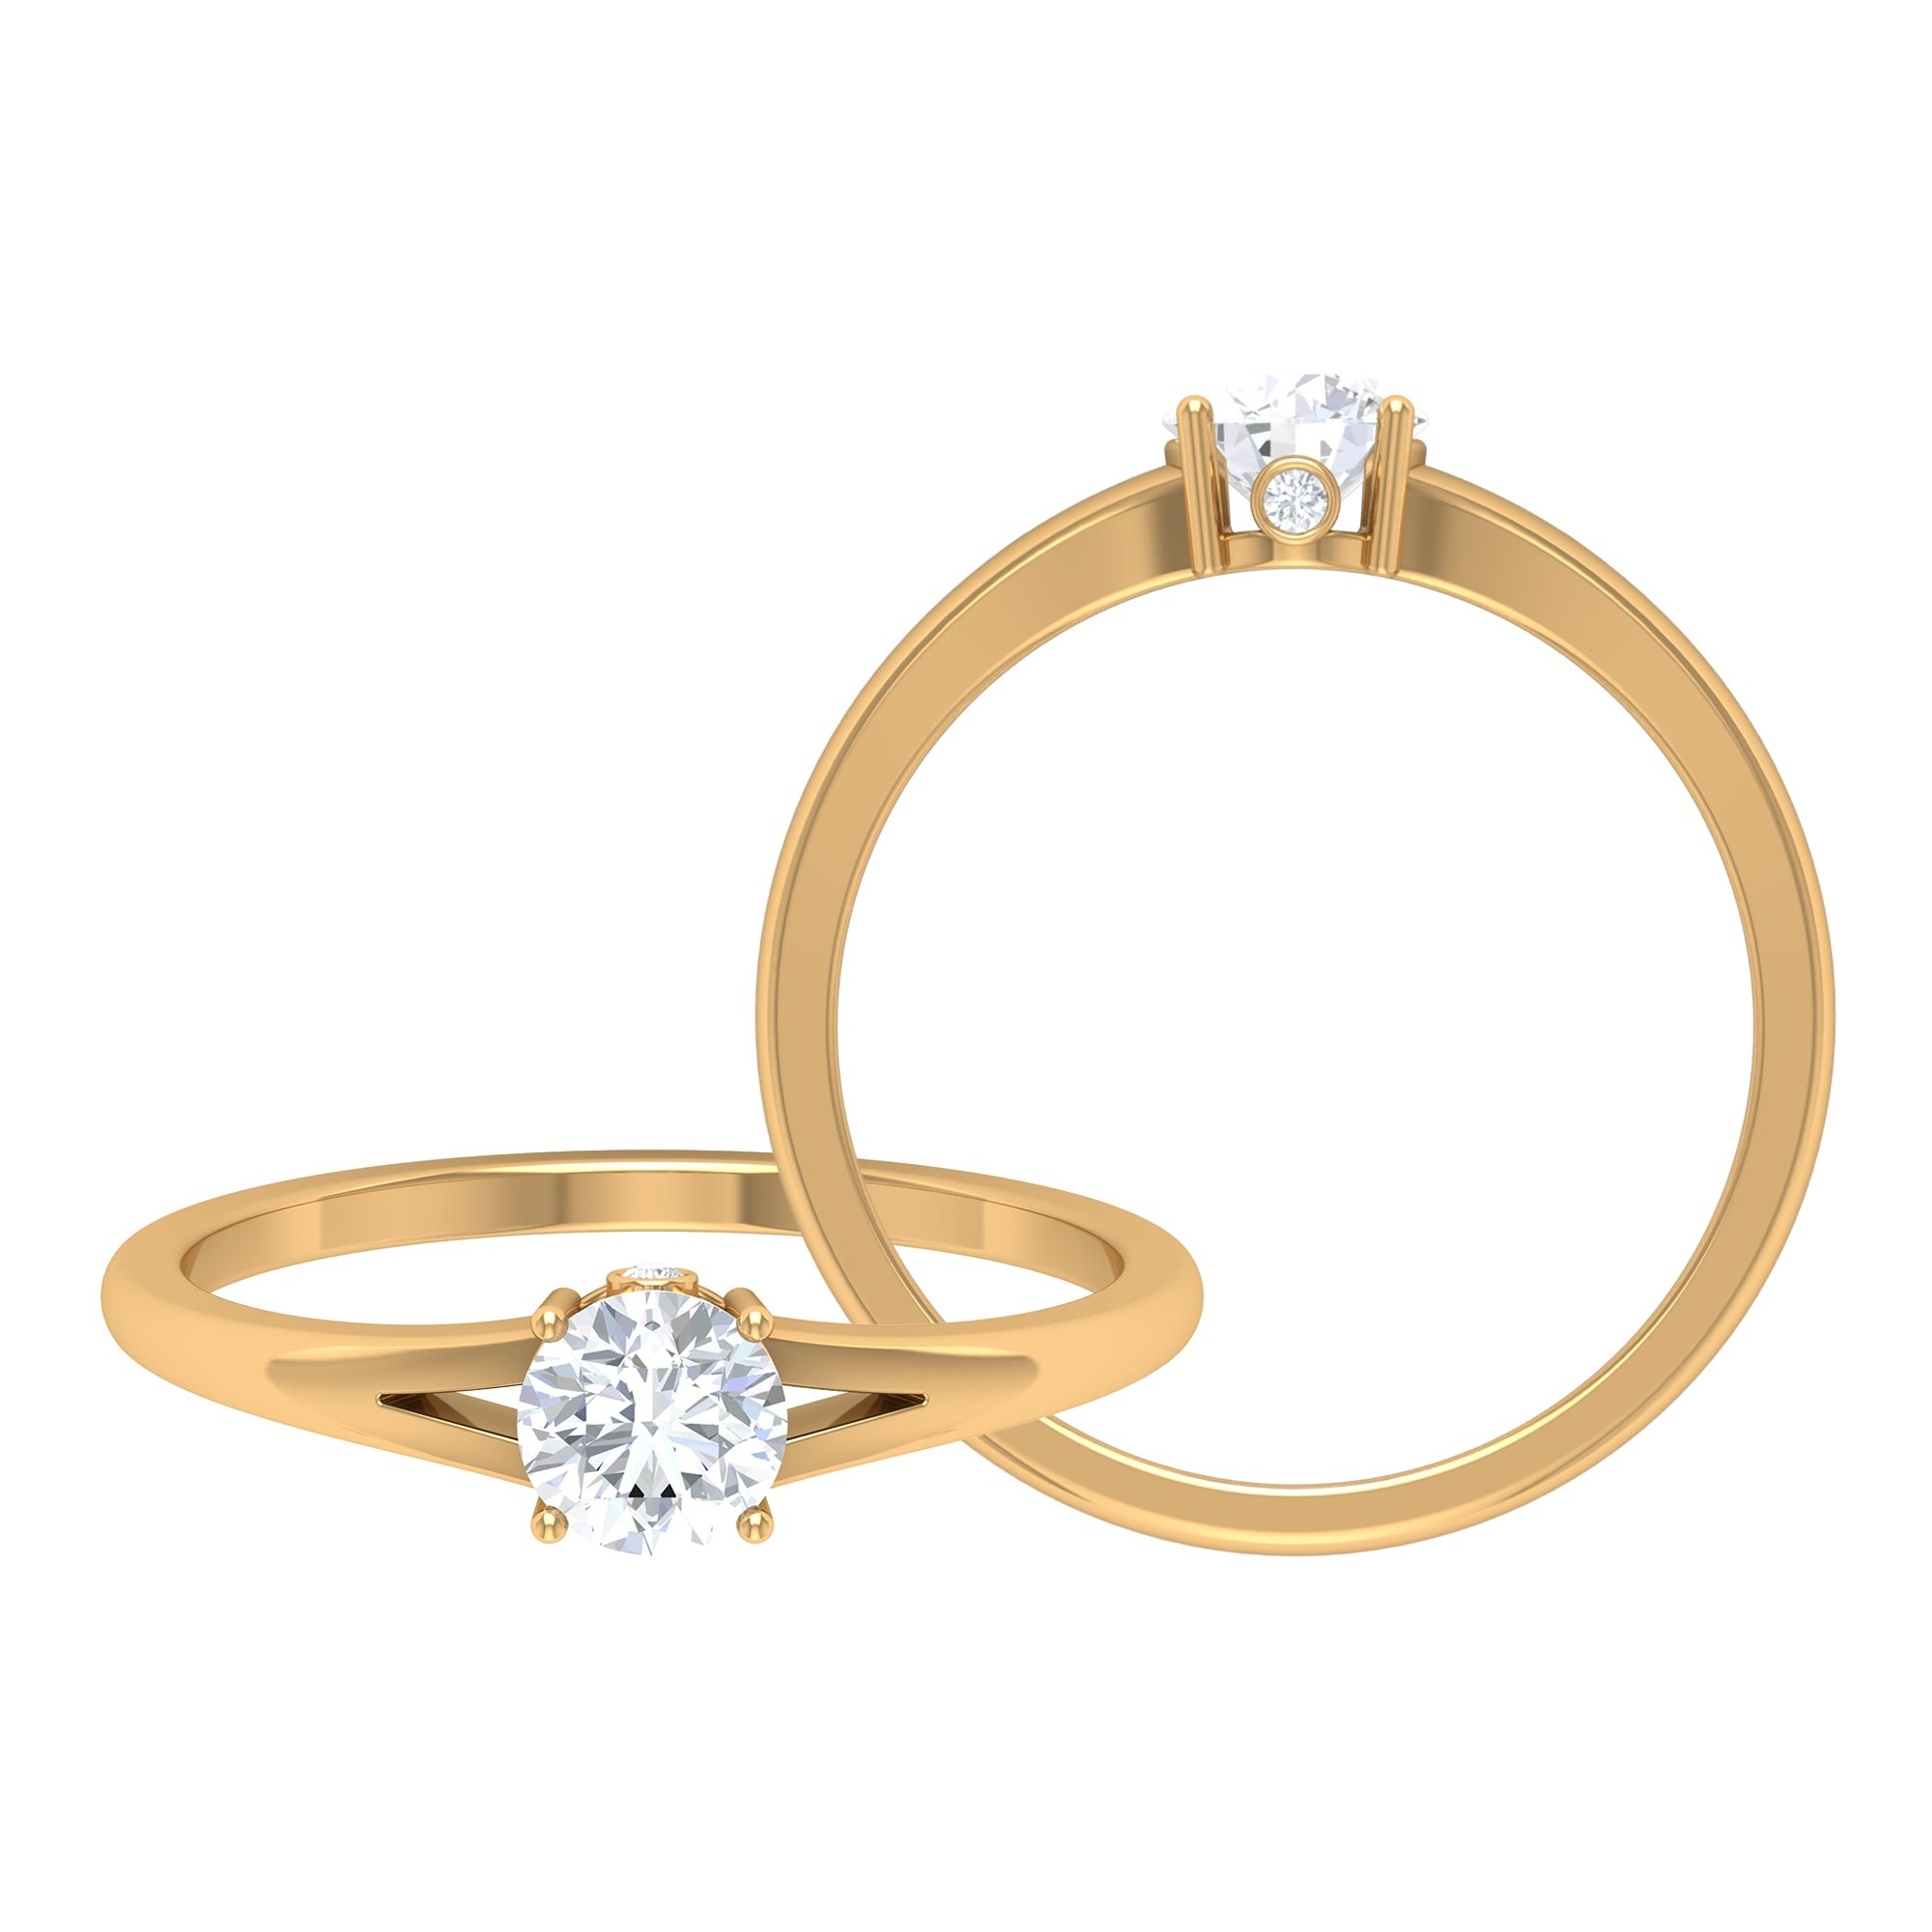 1/2 CT Round Cut Diamond Solitaire Ring in Prong Setting and Surprise Style with Split Shank